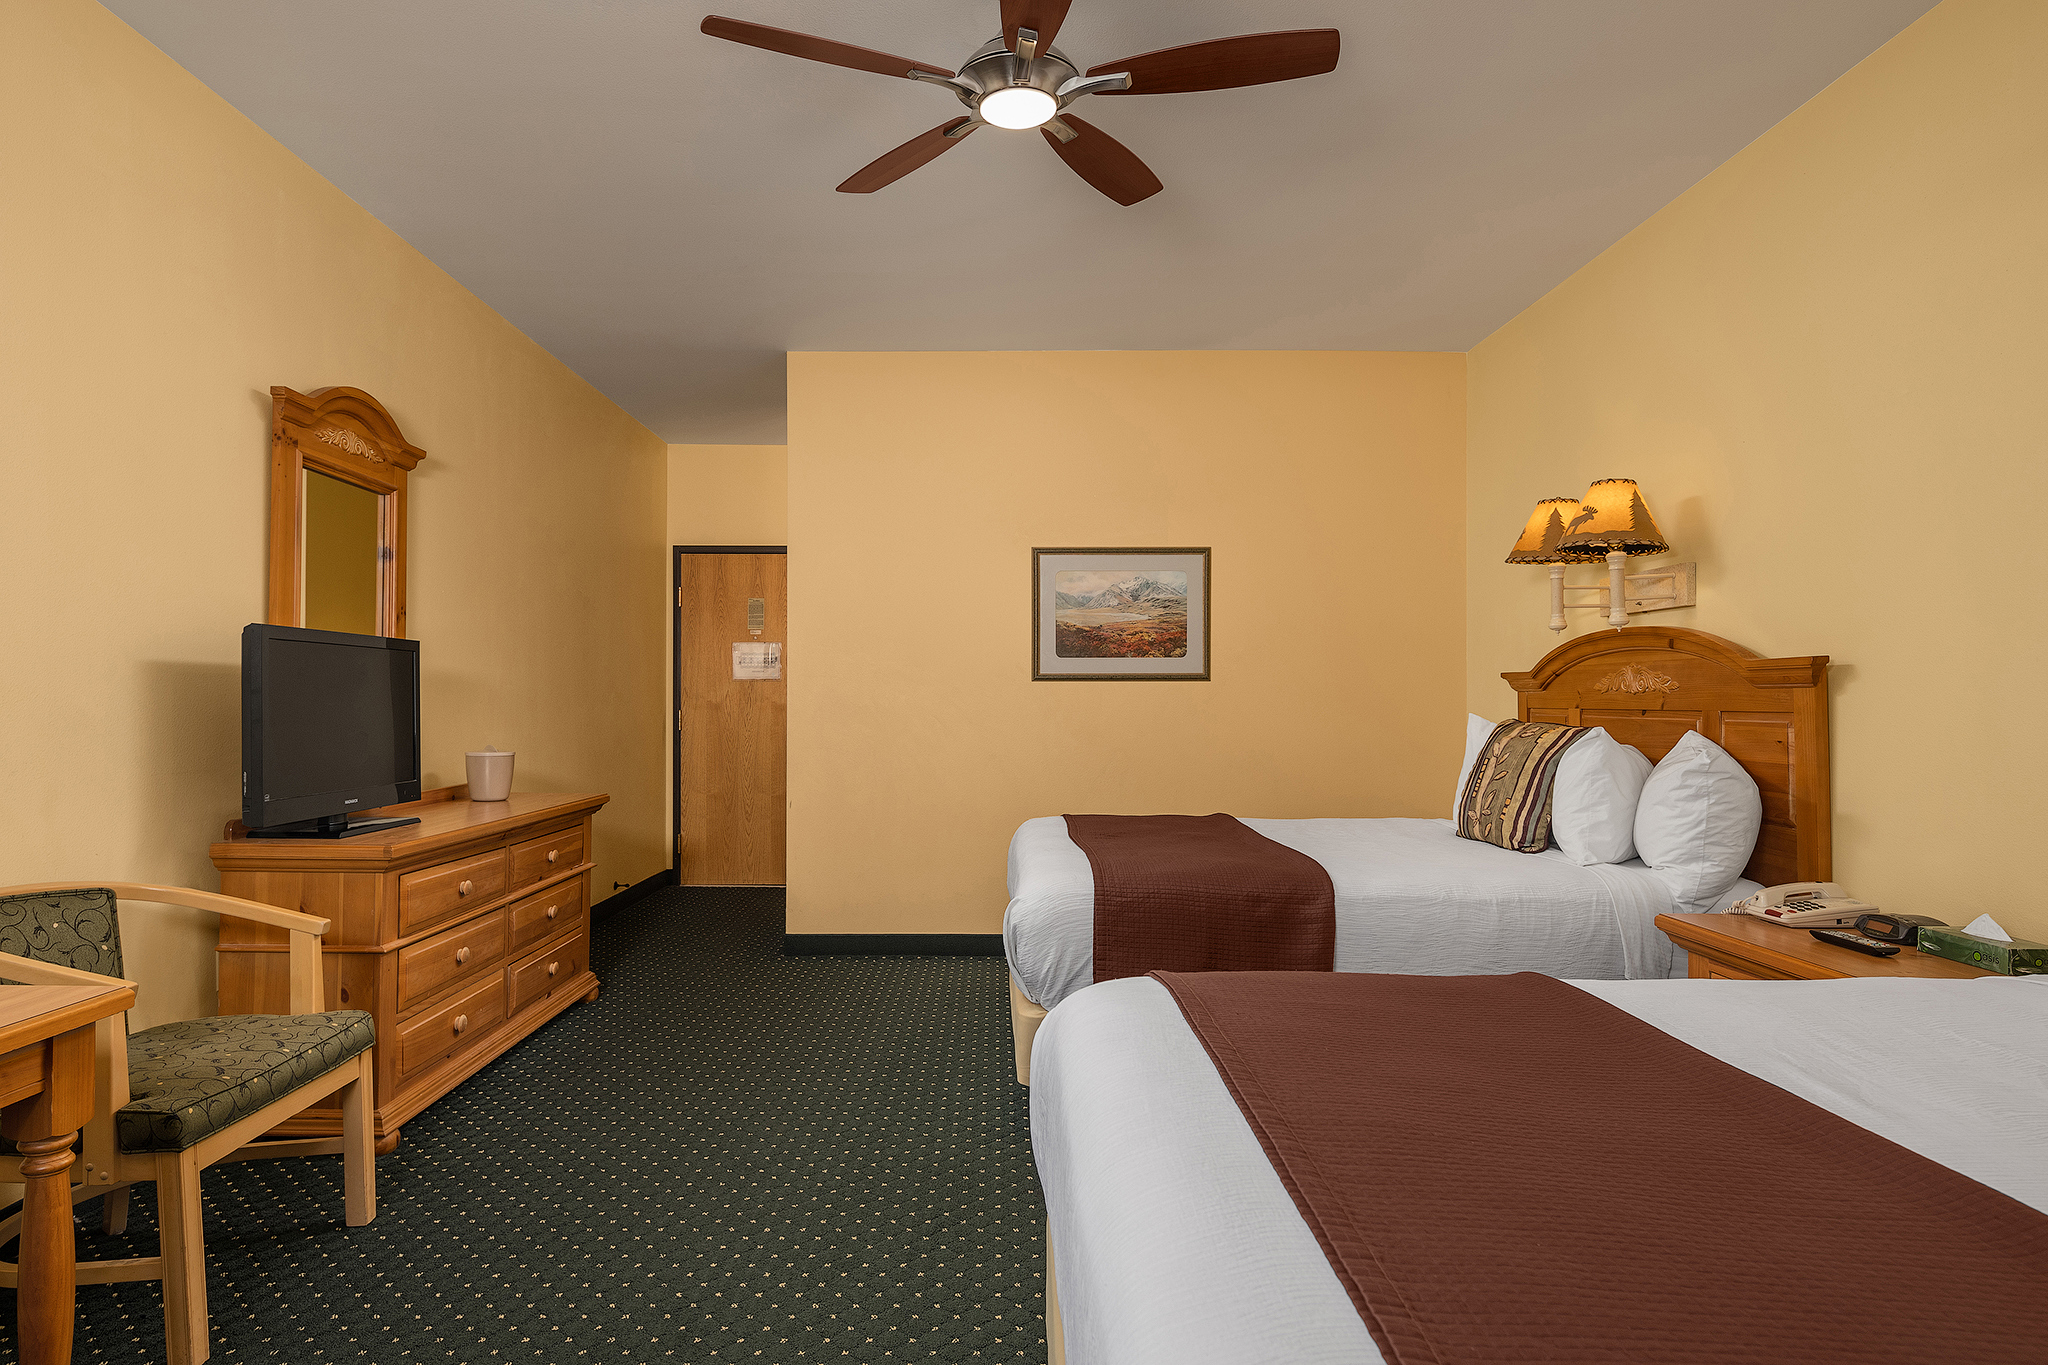 Moose Lodge Interior - 2 Queen Size Beds Exit